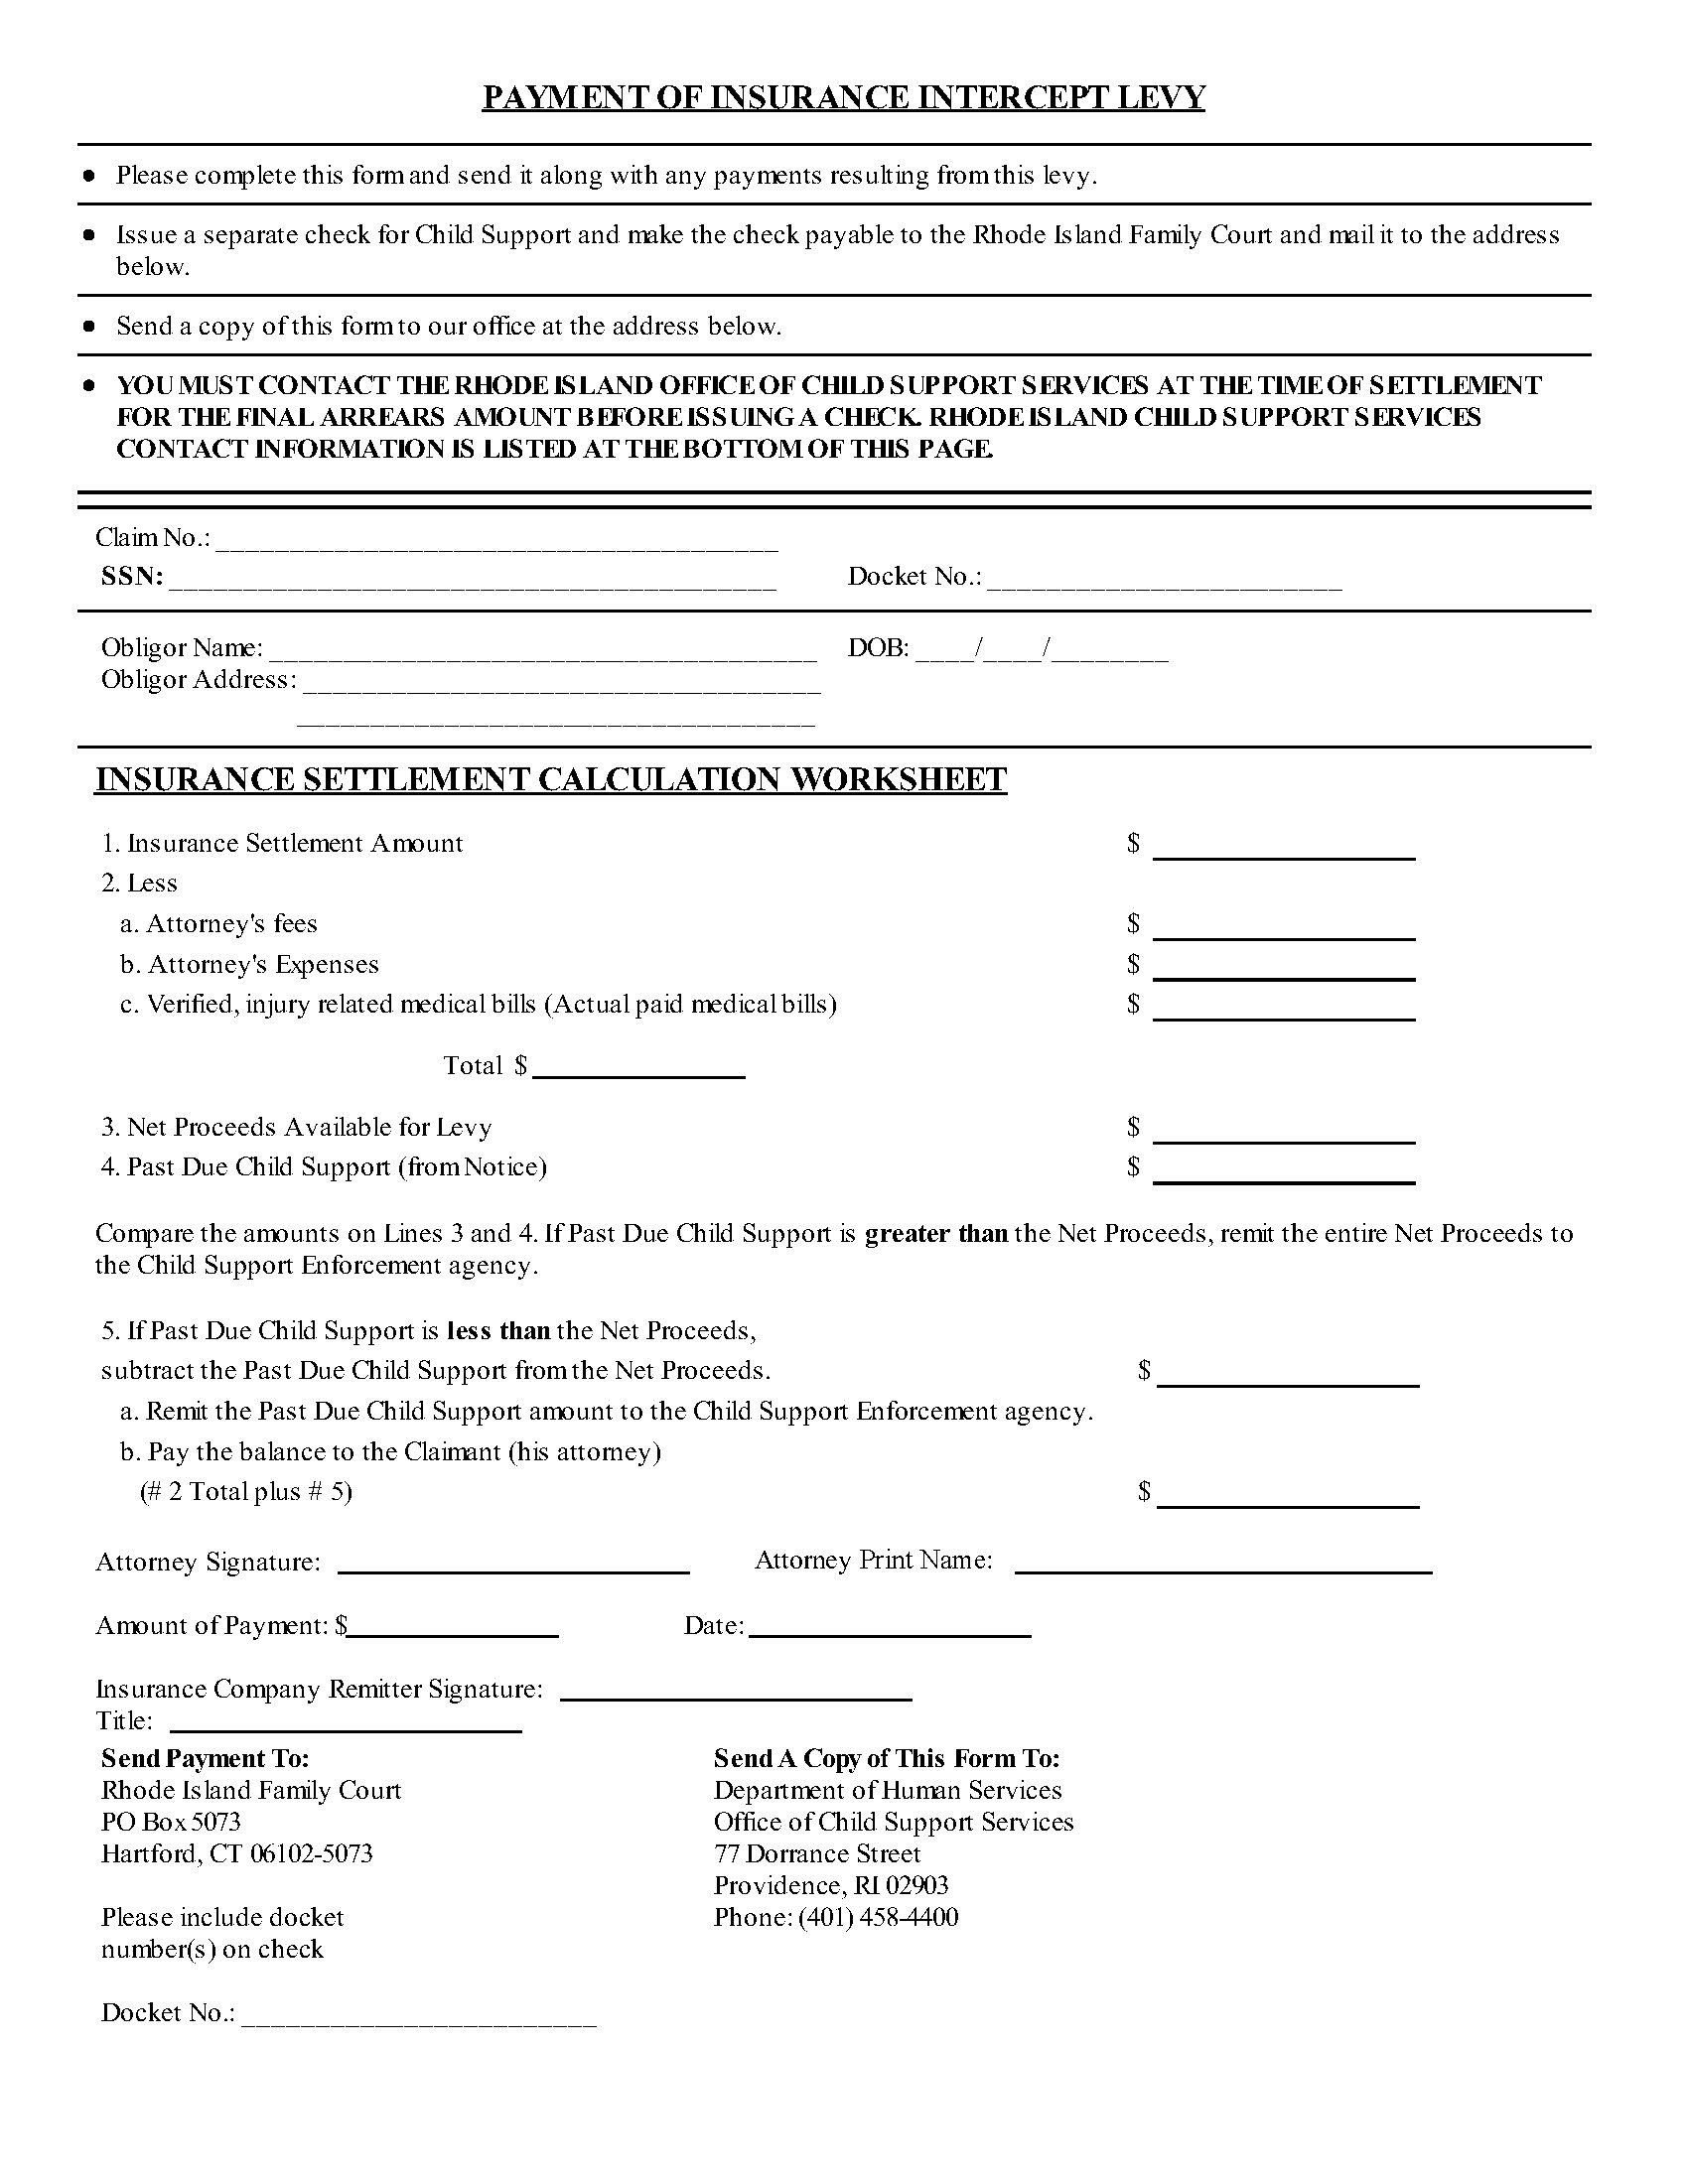 Nc Child Support Worksheet C Nc Child Support Worksheet Nidecmege